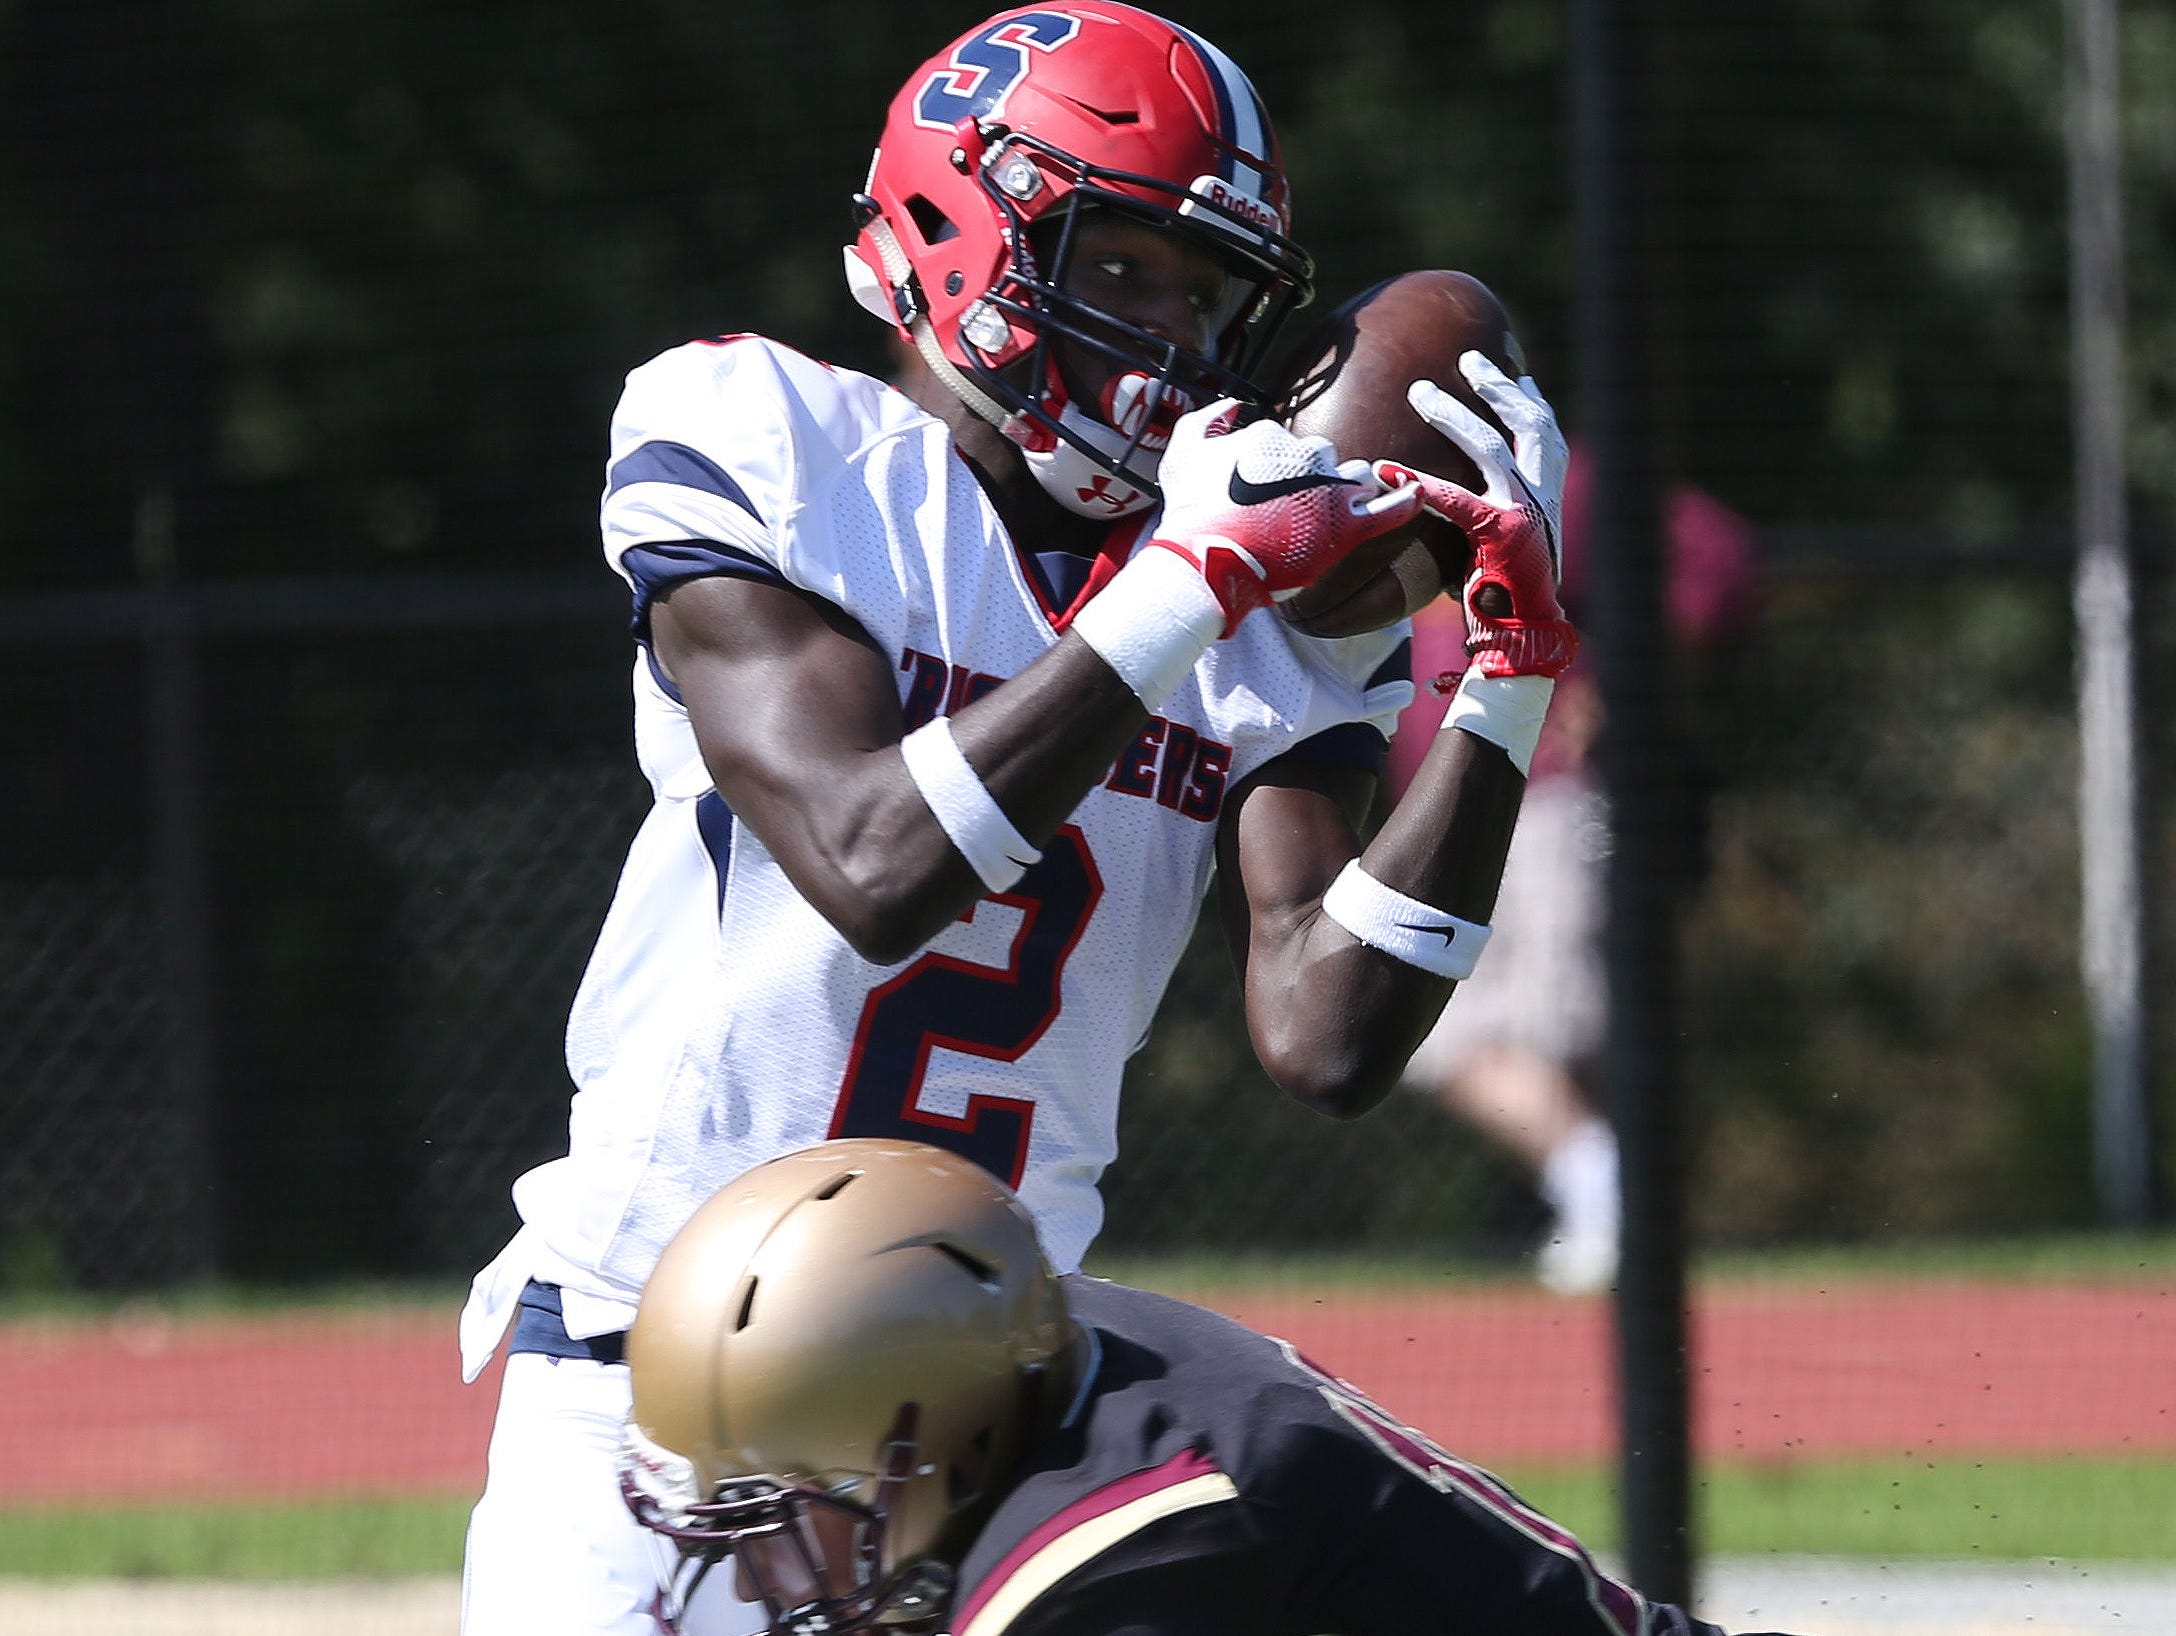 Stepinac's Atrilleon Williams (2) catches a touchdown pass while being ht by Iona's Michael Degasparis (10) for his first touchdown of the game, during football action at Iona Prep in New Rochelle Sept. 17, 2016. Stepinac won the game 42-34.